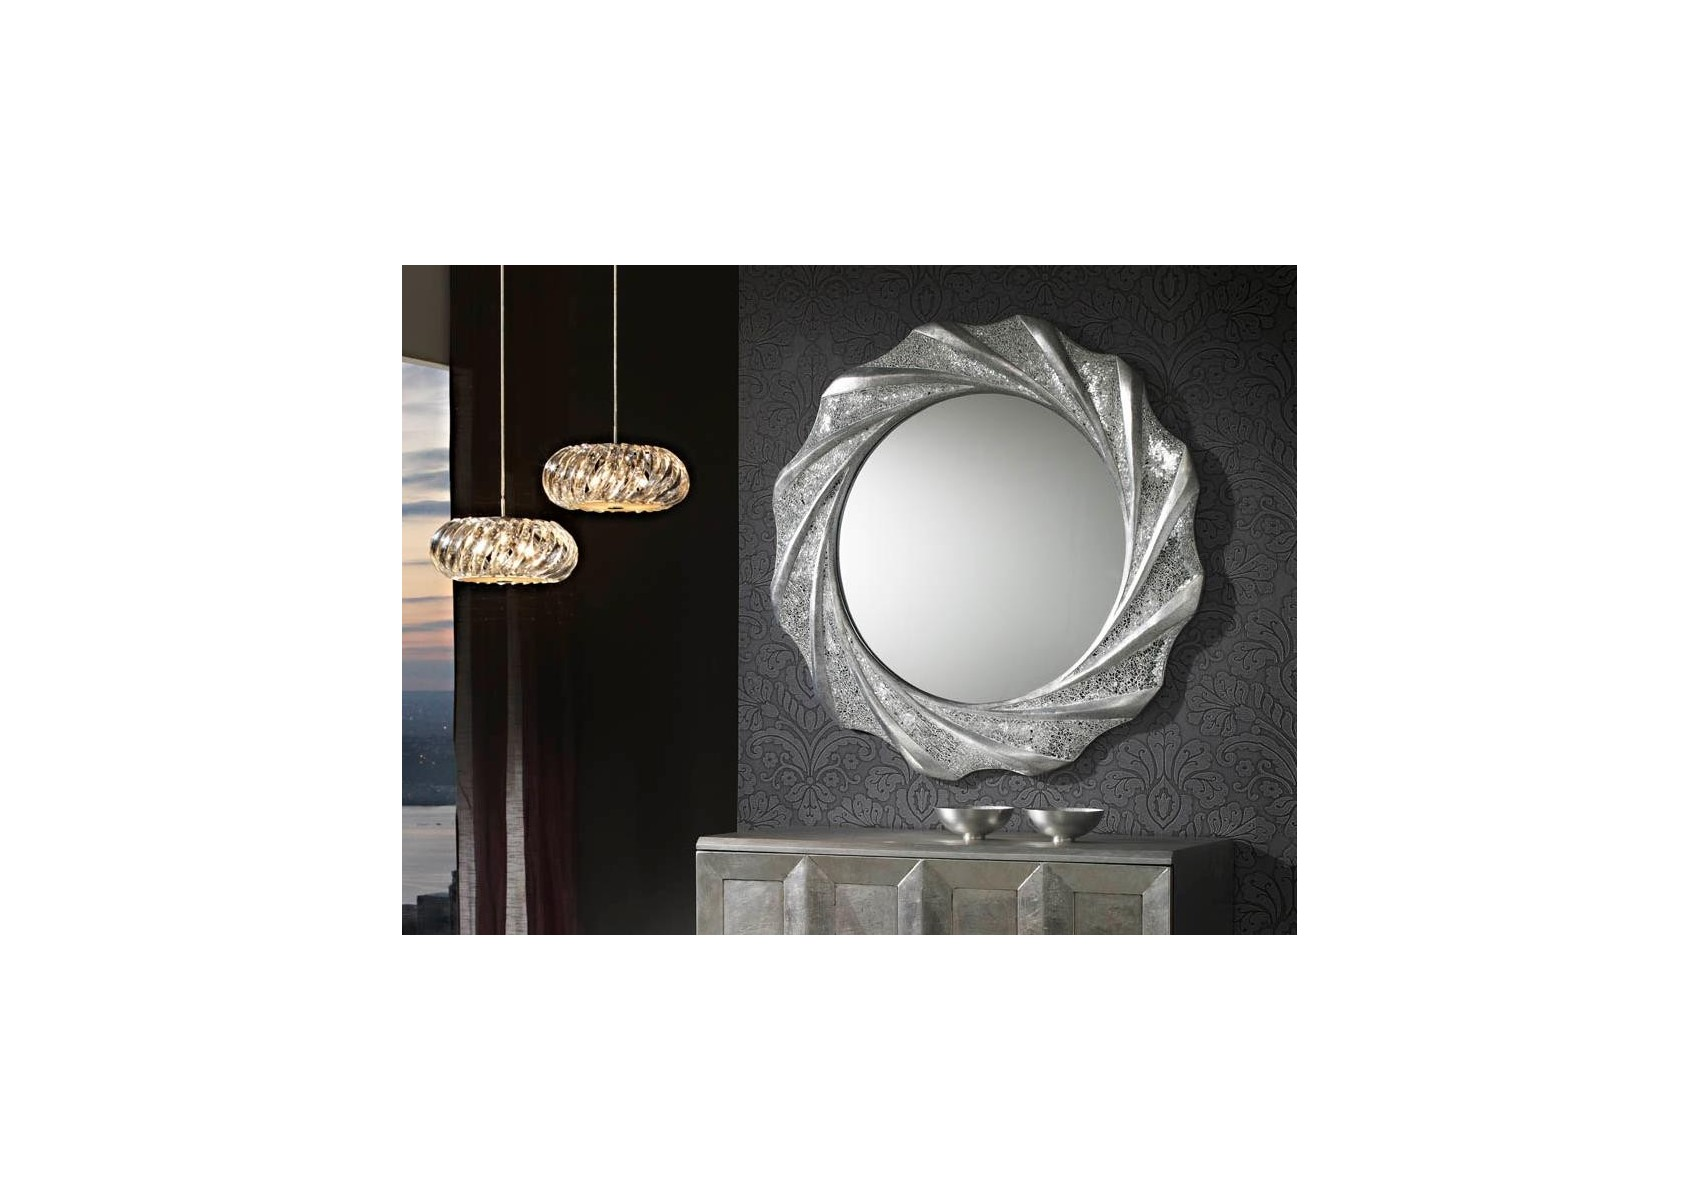 Miroir rond collection gaudi design deco schuller for Miroir design rond